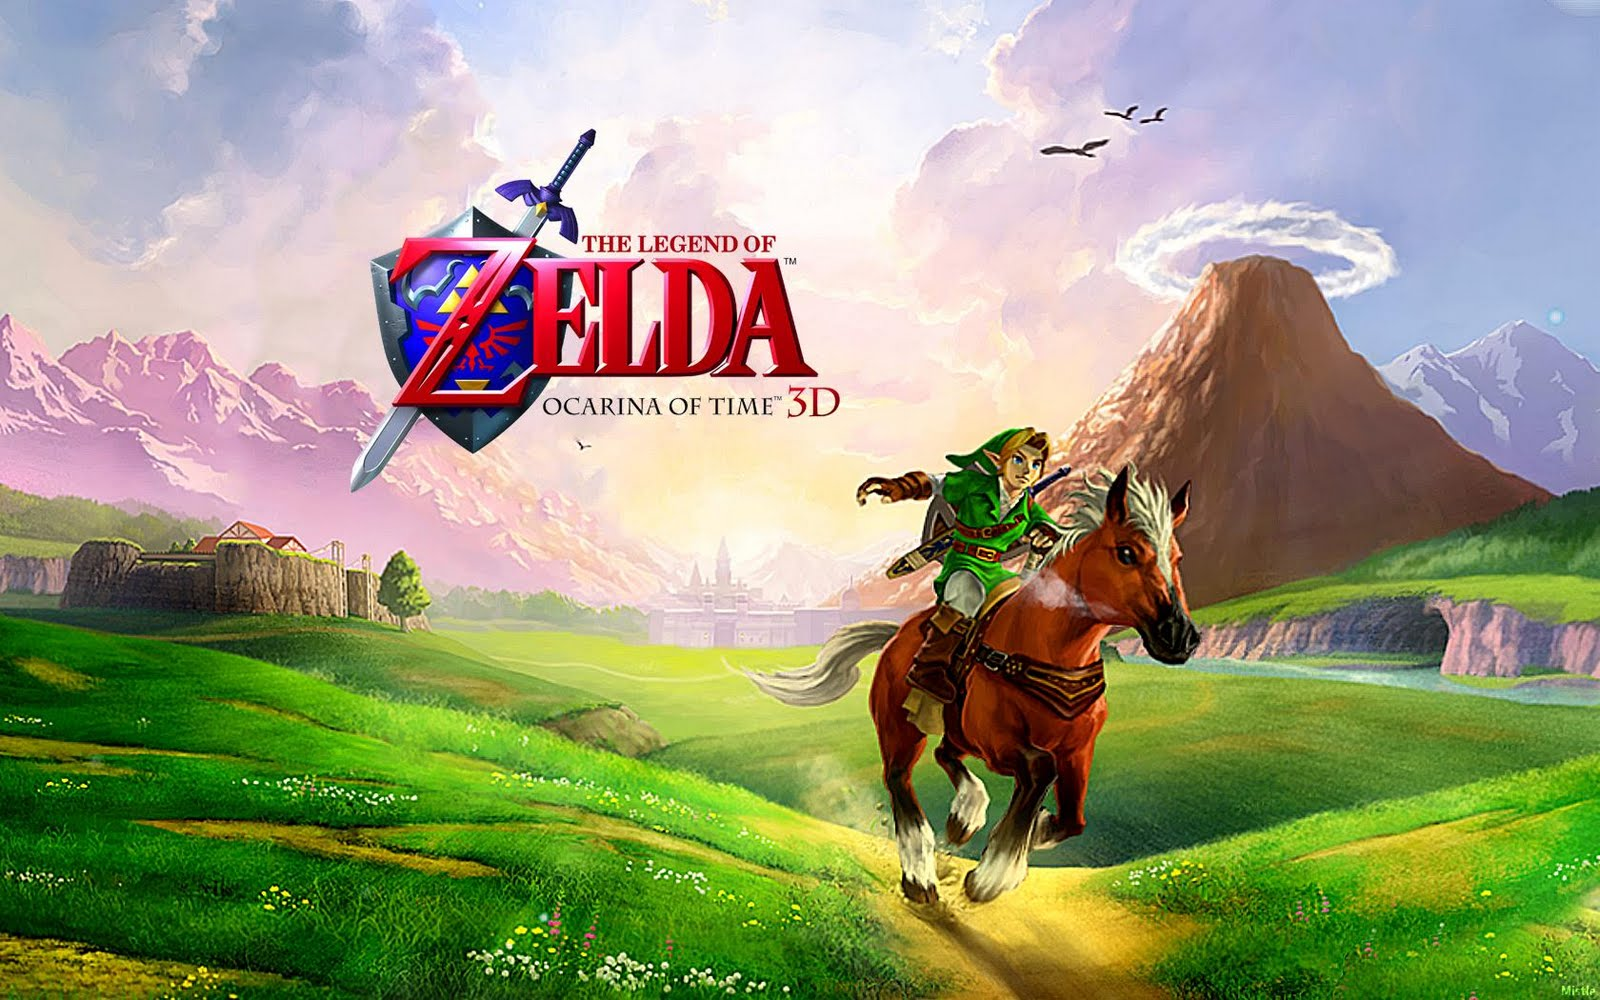 Pure Nintendo Review: The Legend of Zelda Ocarina of Time